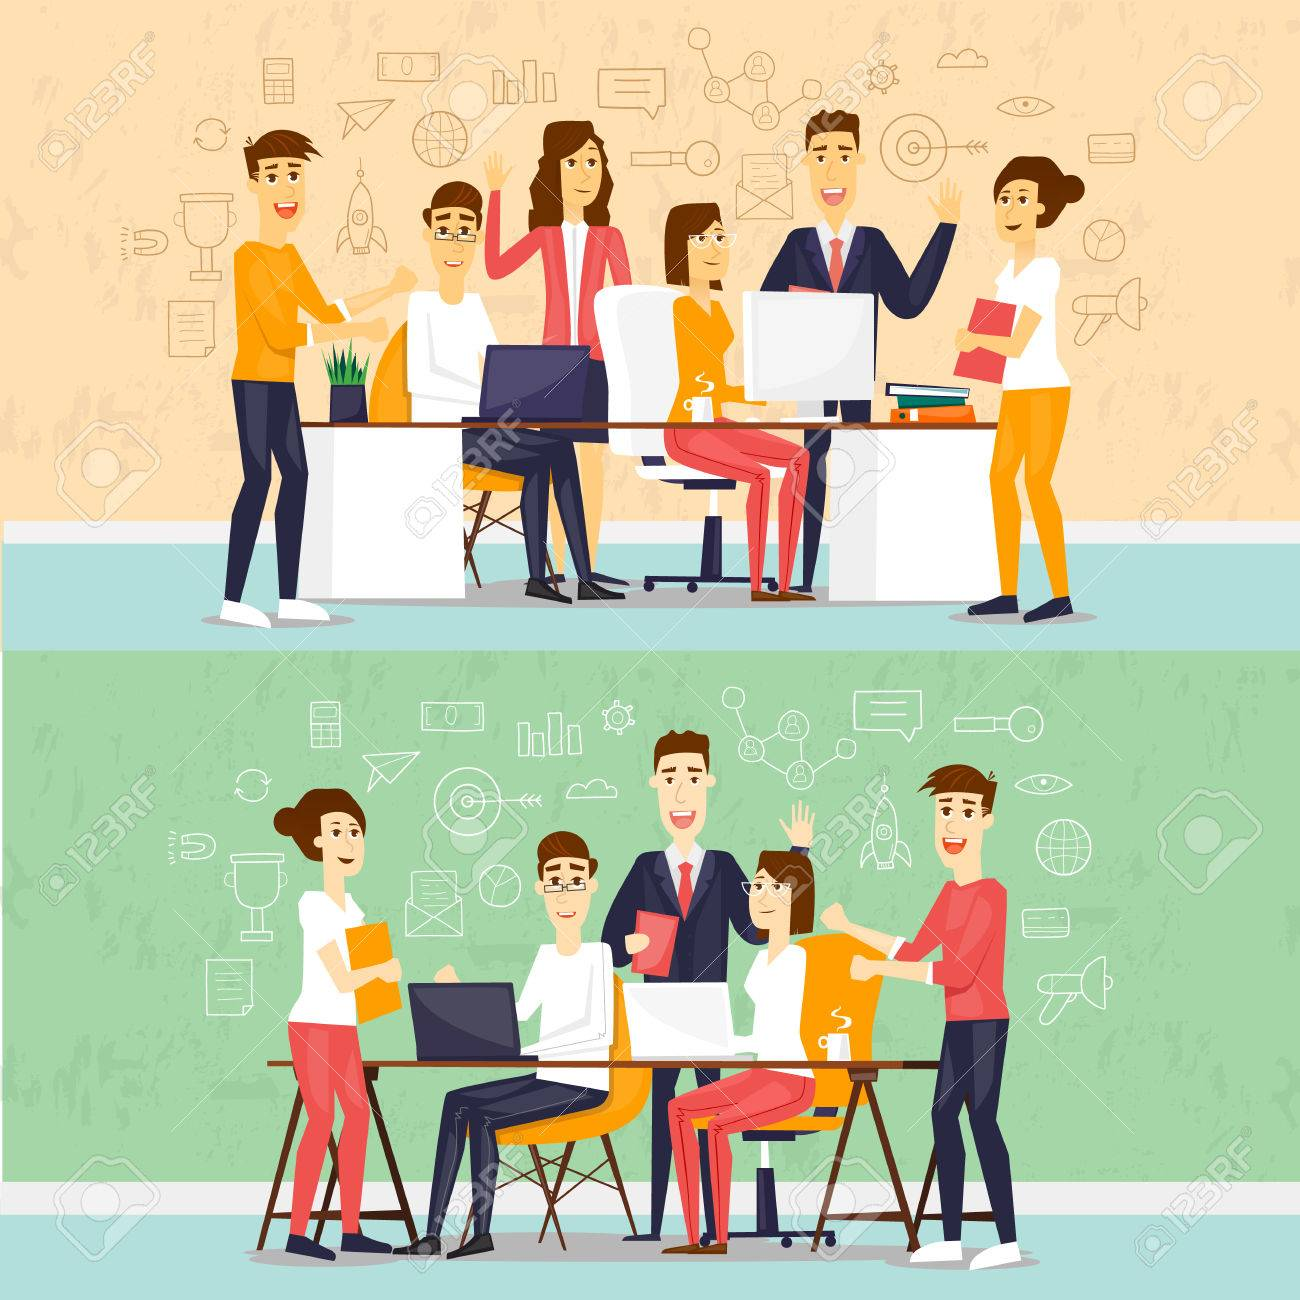 Coworking people, business meeting, teamwork, business, collaboration and discussion, meeting around a conference table, brainstorm. Flat design vector illustration. - 56147009